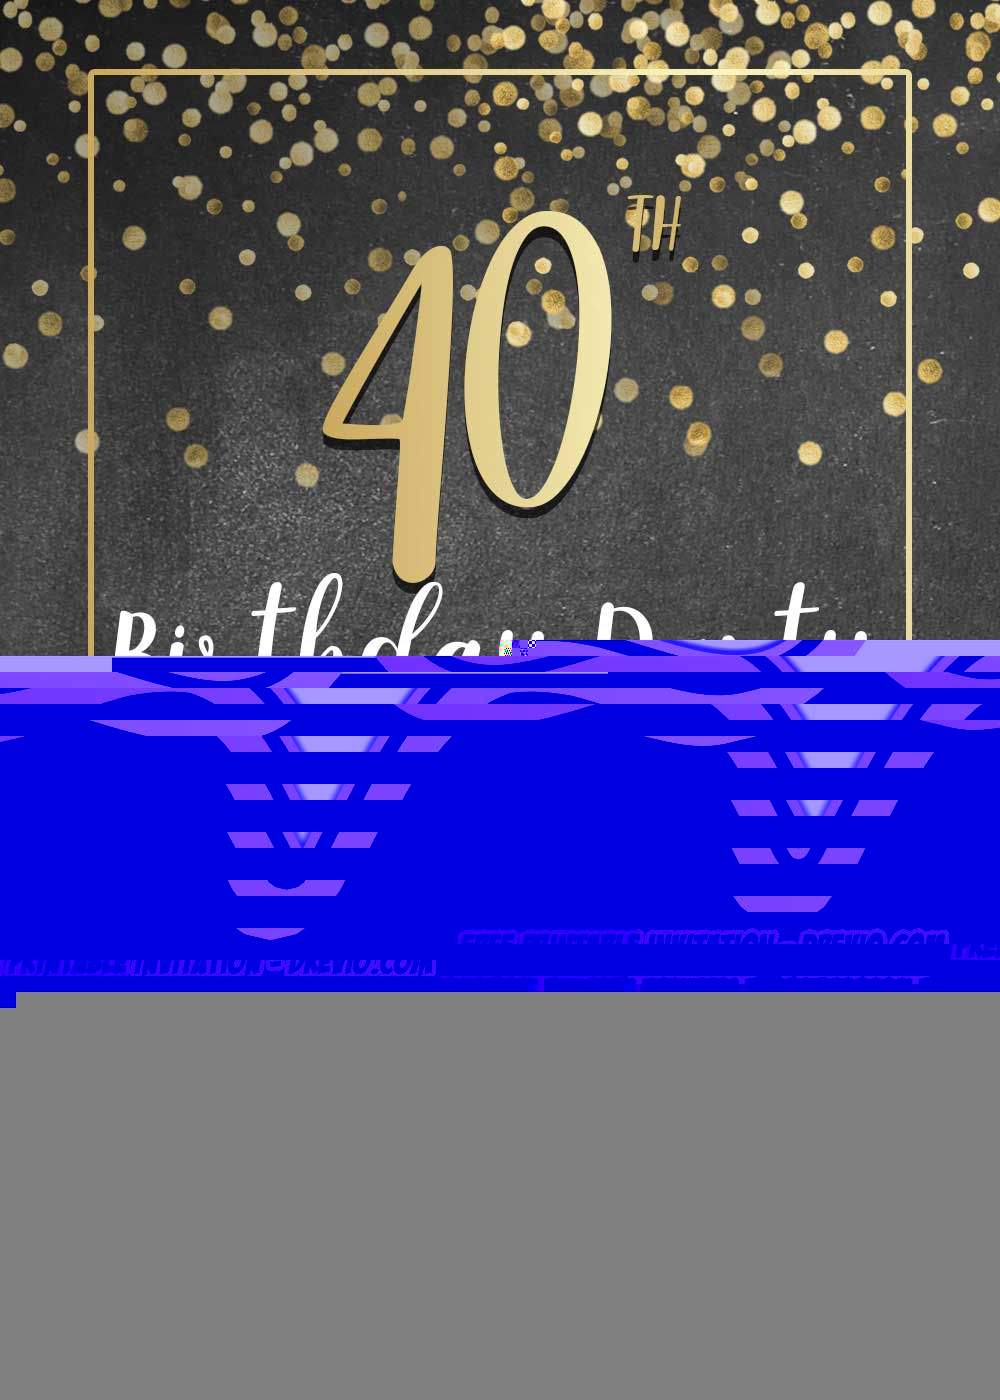 008 Imposing 70th Birthday Invitation Template Free Highest Clarity  Surprise Invite With PhotoFull